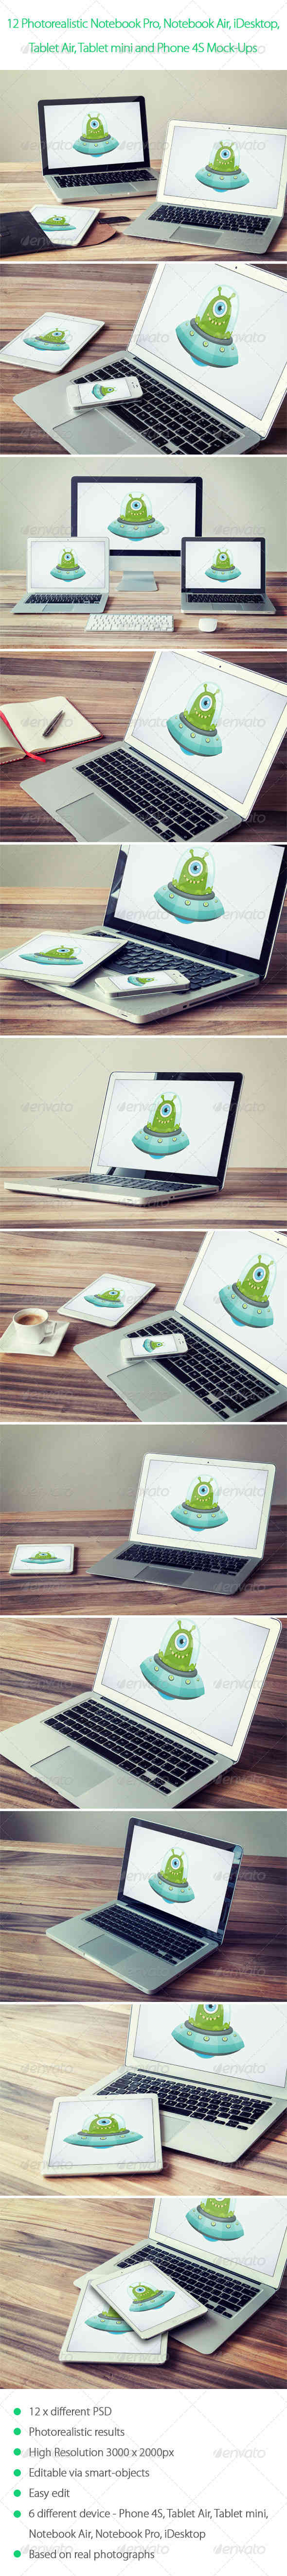 12 Photorealistic Notebook, Mobile Device Mock-Ups